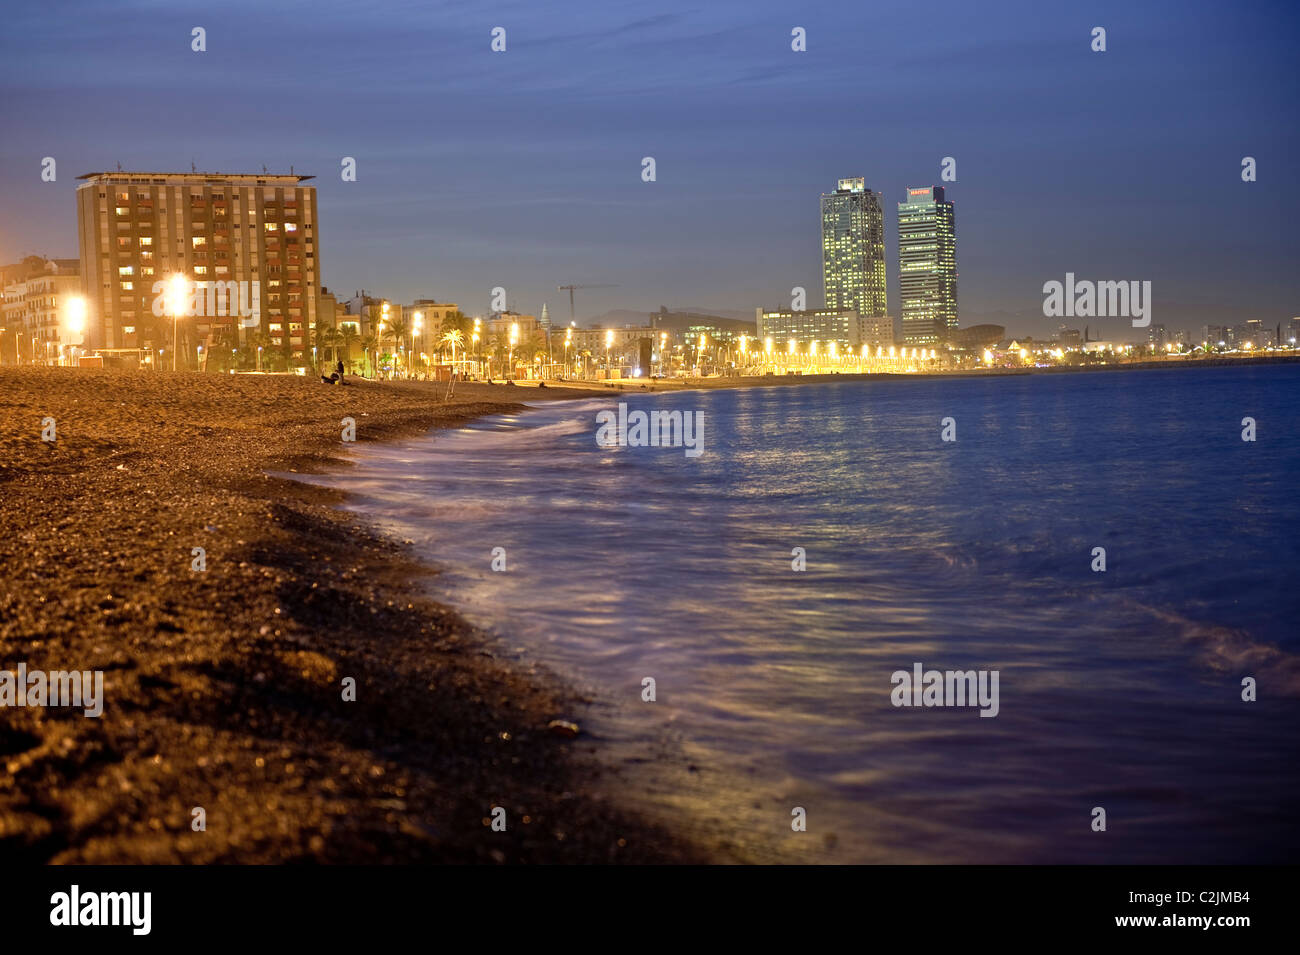 View of Barcelona's coast by night, Spain - Stock Image